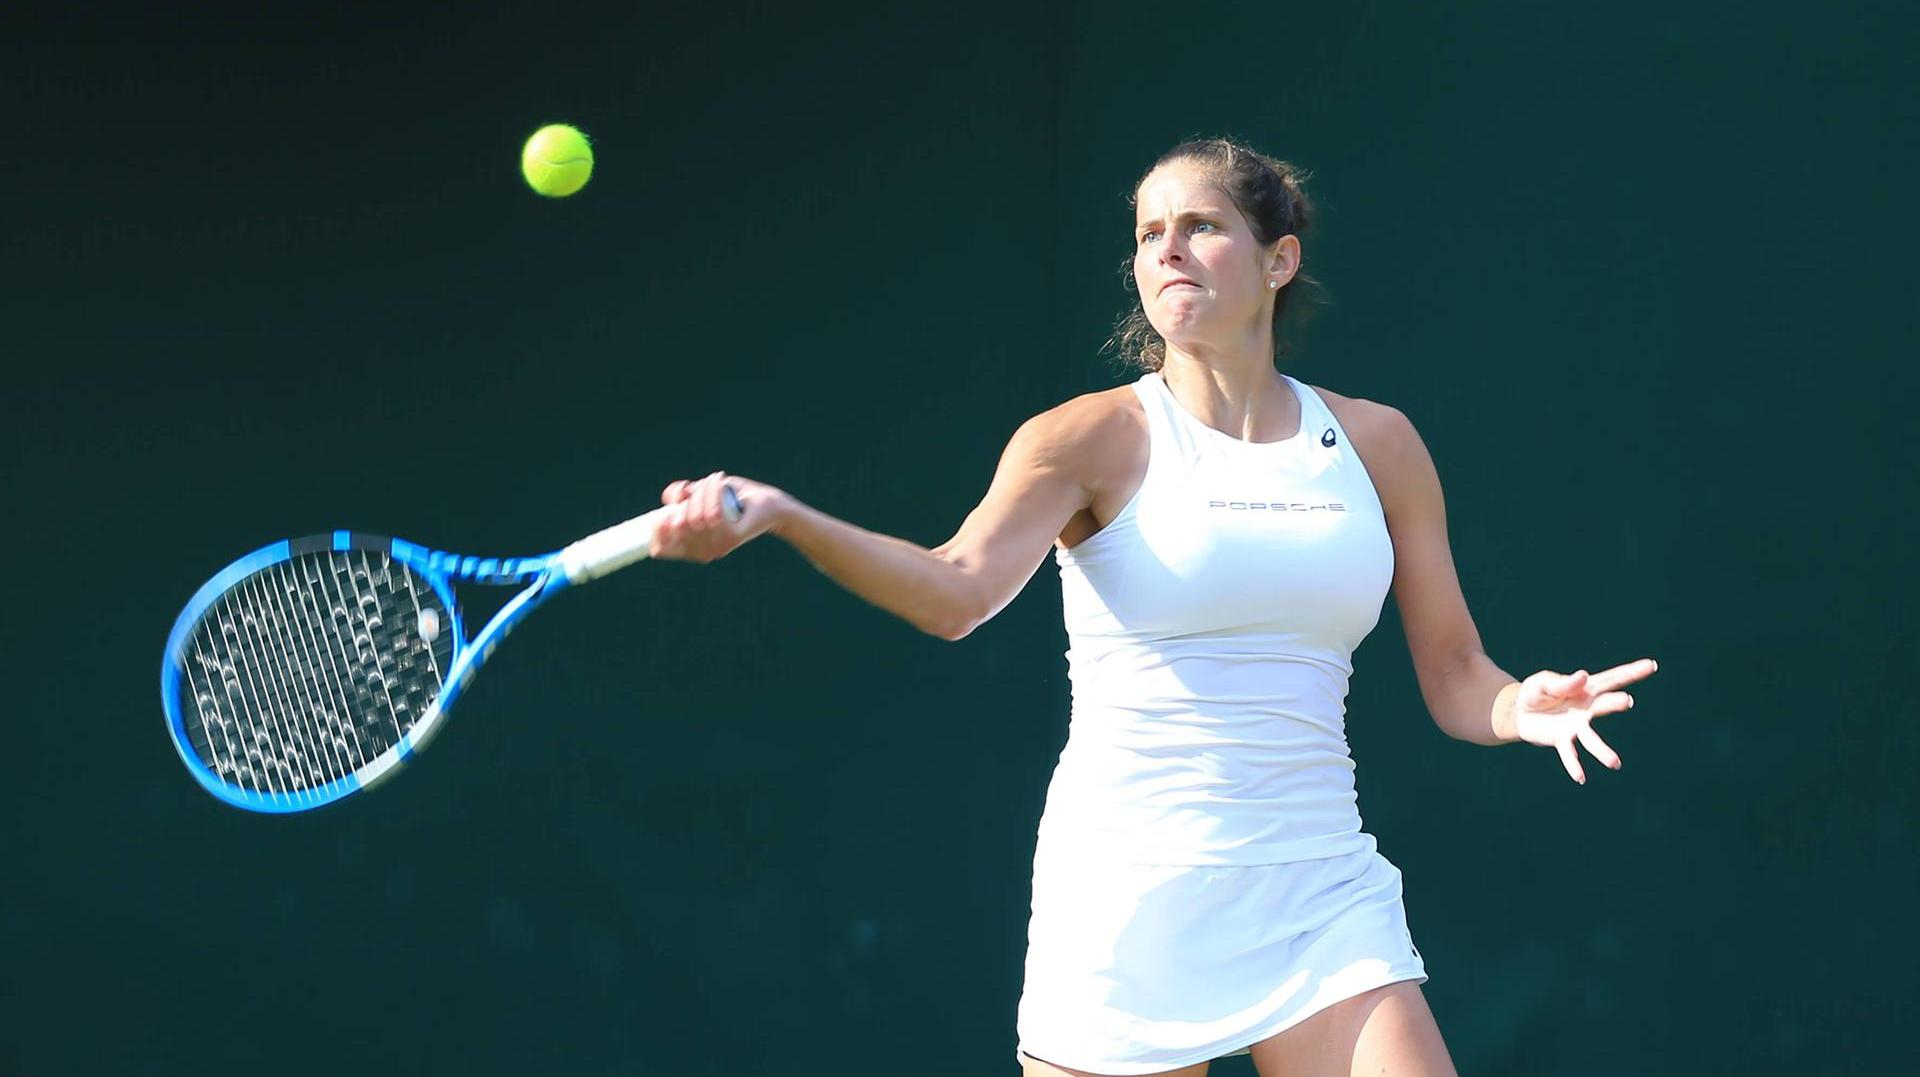 Julia Gorges Wants To Go To The Last 16 Against Serena Williams